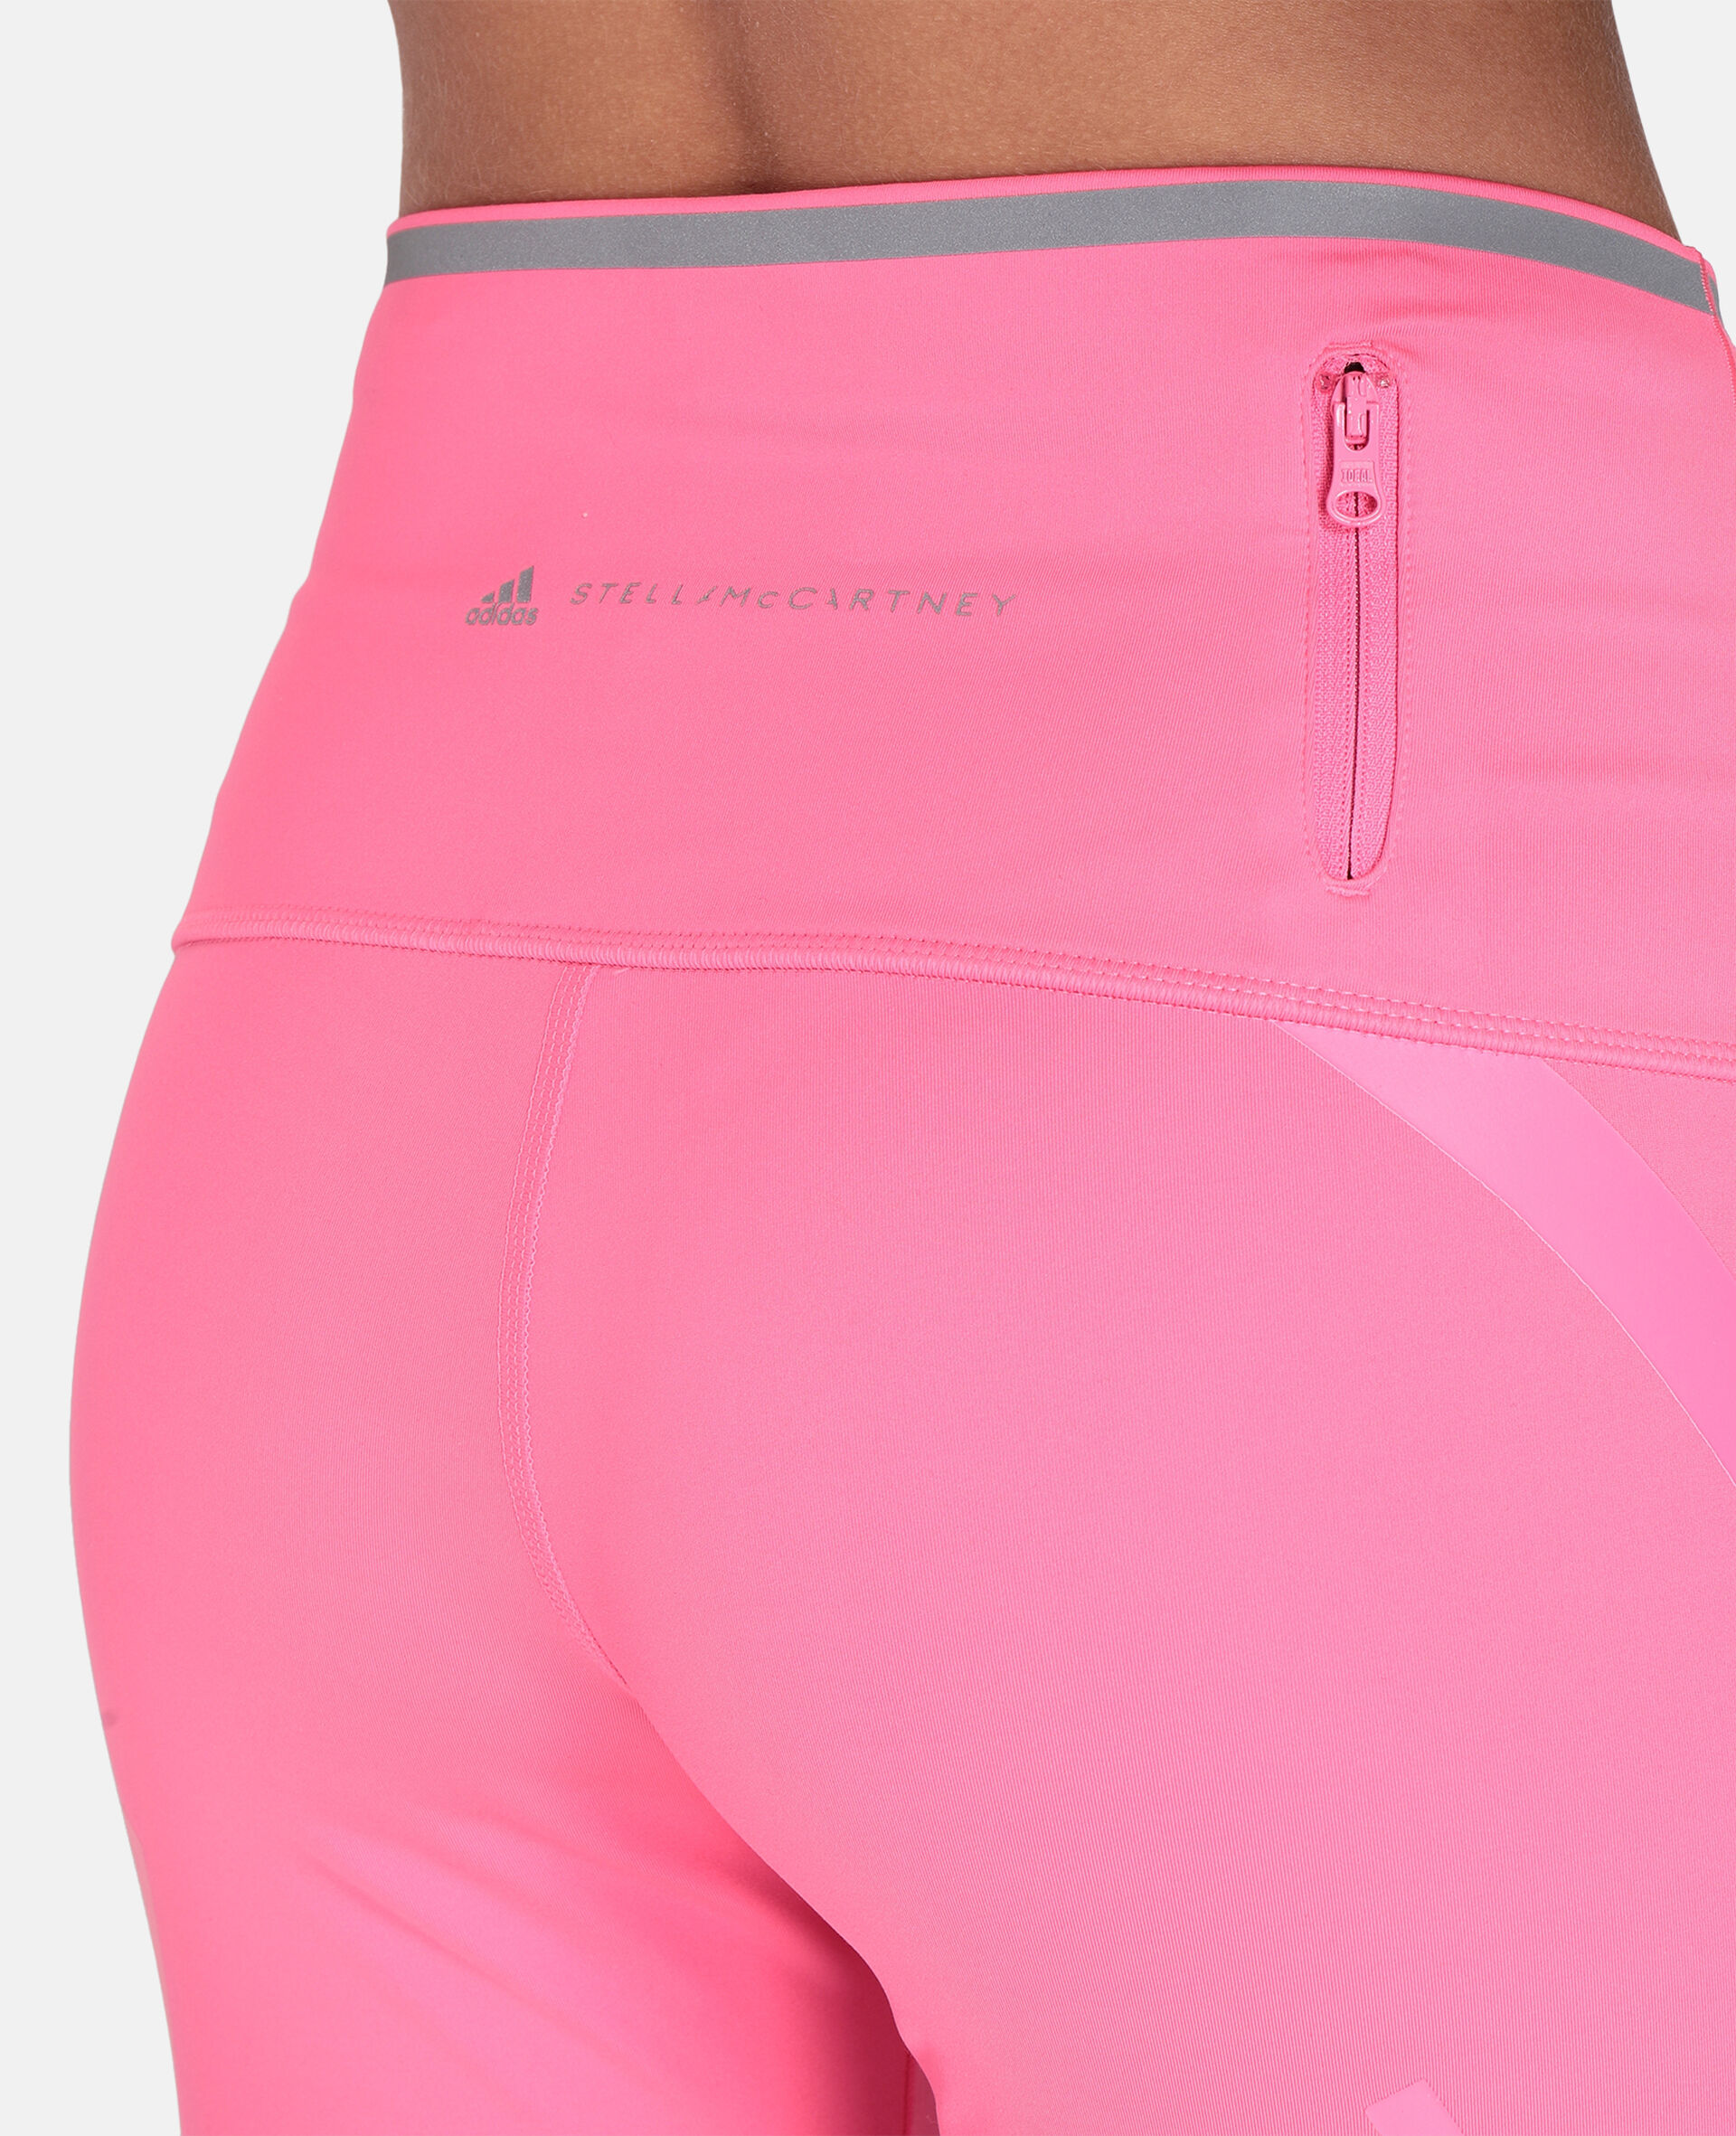 TruePace 3/4 Running Tights-Pink-large image number 3